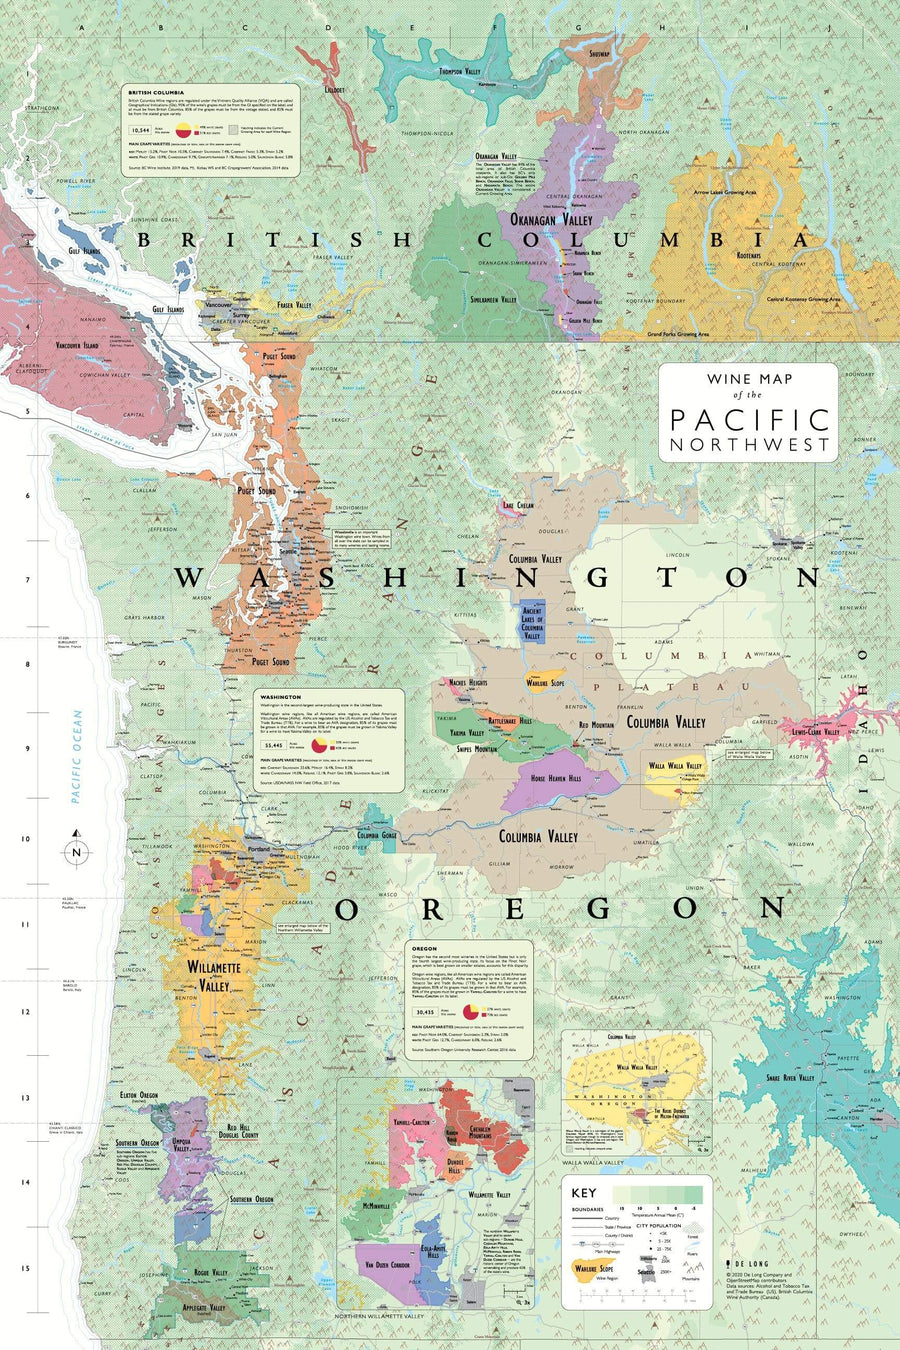 Wine Map of the Pacific Northwest Bookshelf Edition Map